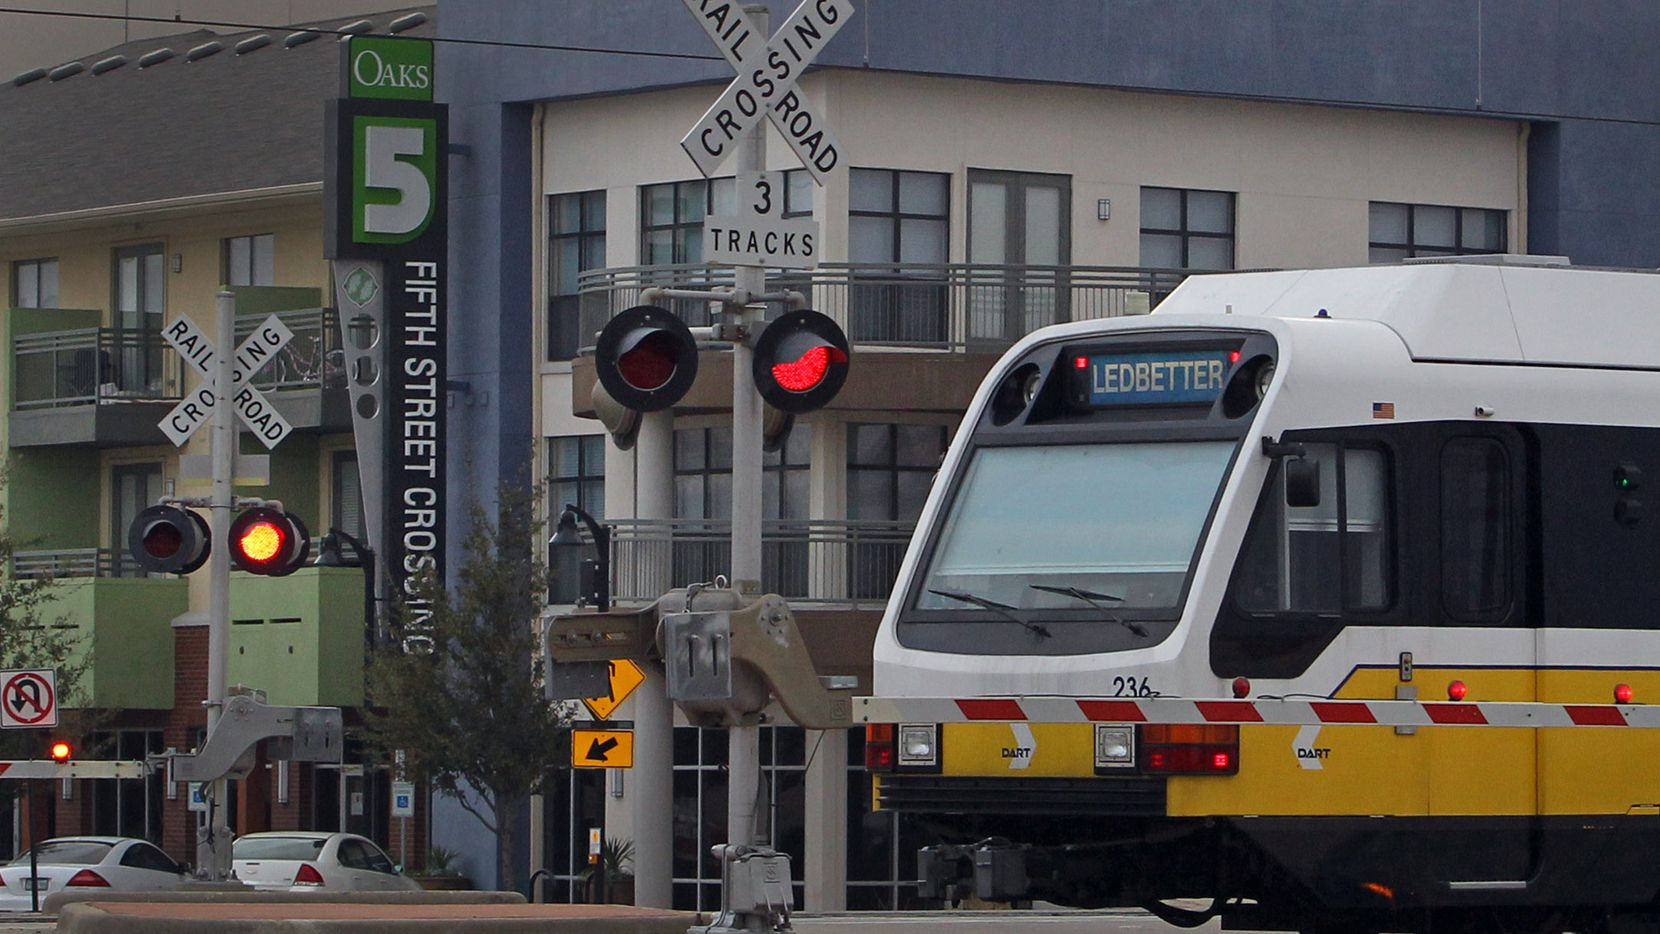 A DART train passes by the 5th Street Crossing residences, a transit-oriented mixed-use development, at the downtown Garland Blue Line station.